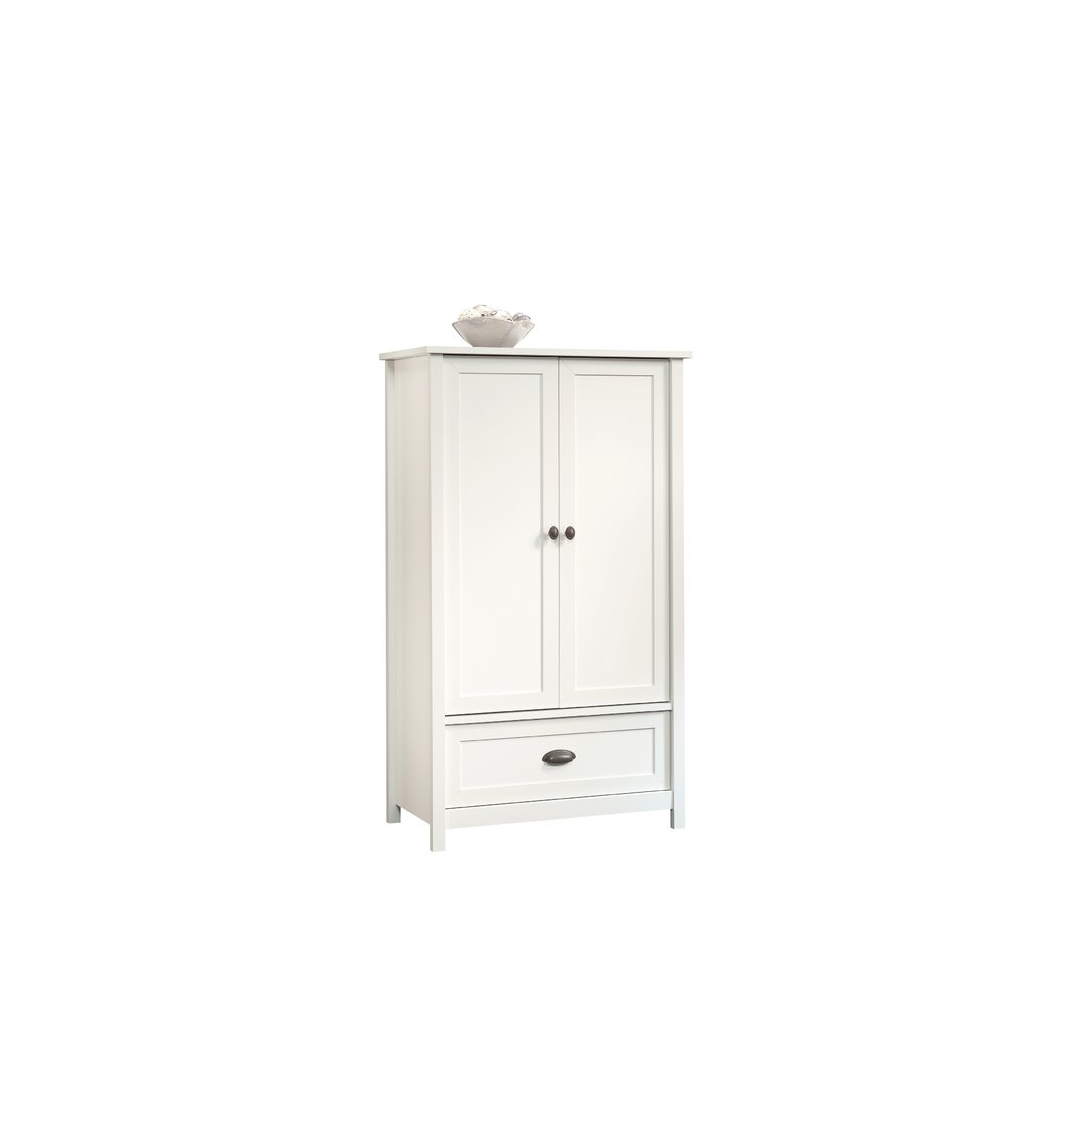 Best for Linen Closet Storage: Three Posts Rossford Armoire